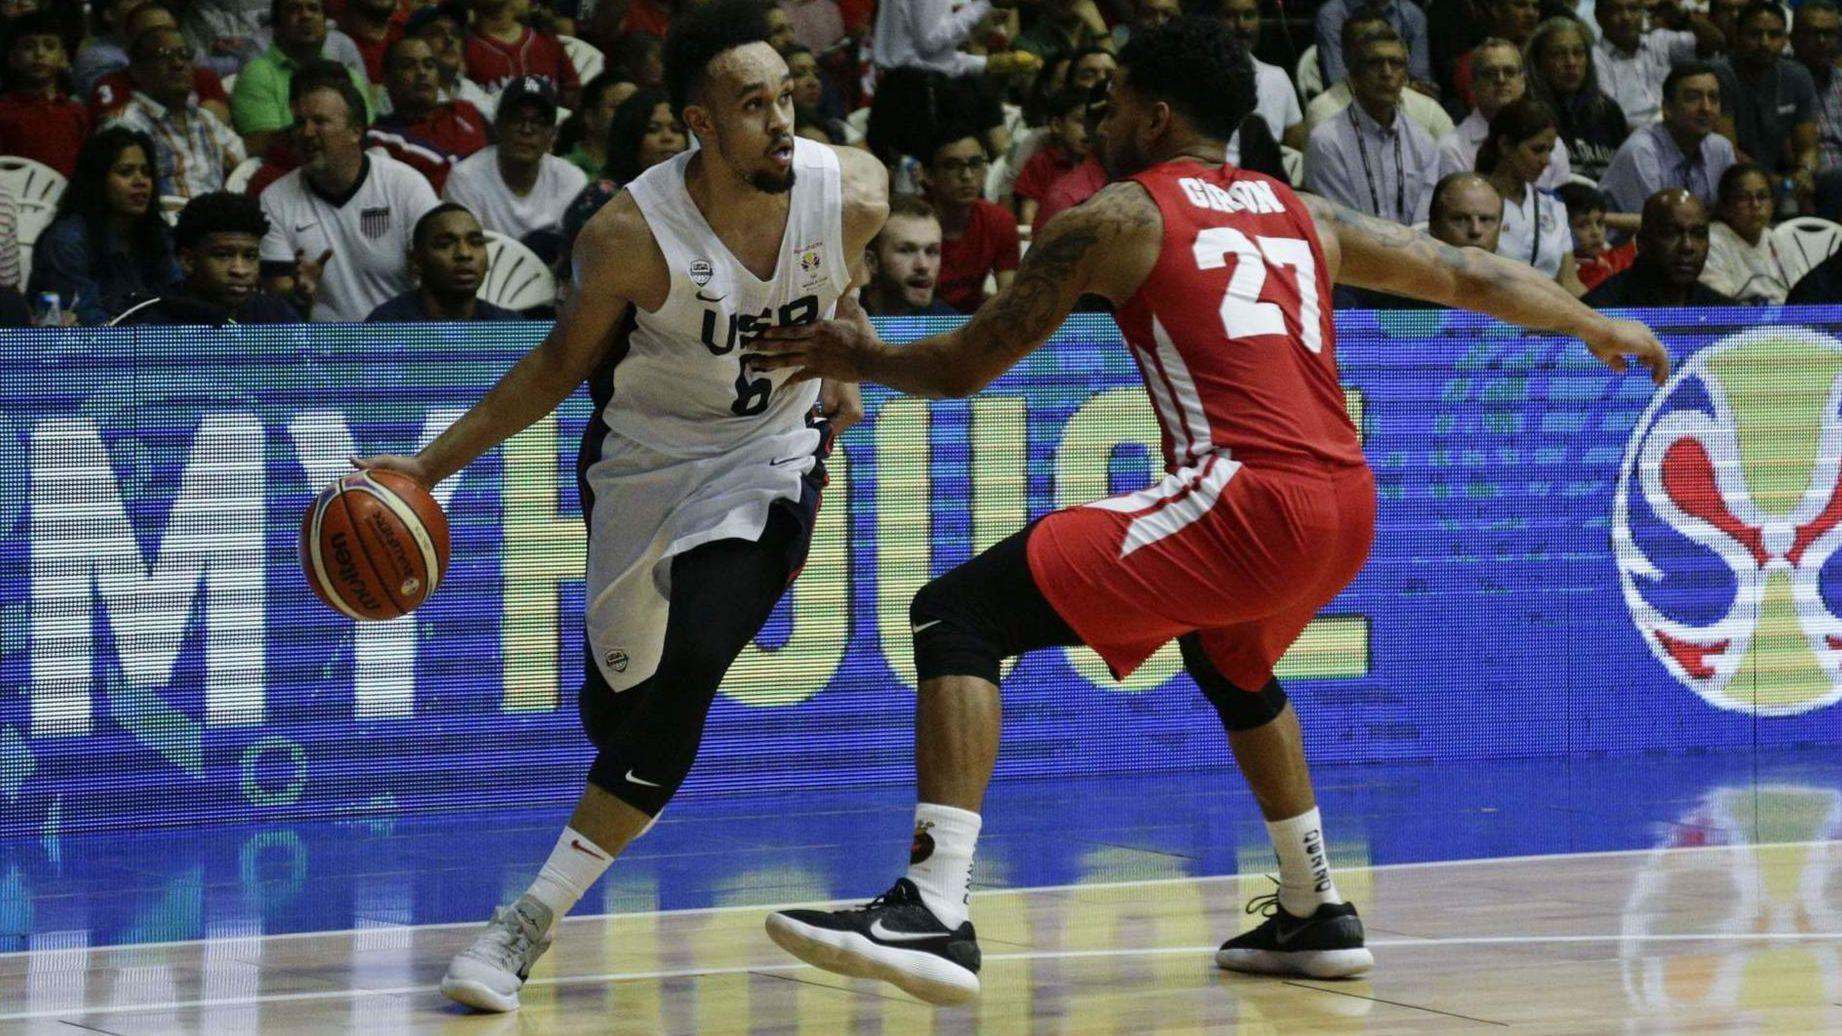 Ct-spt-us-panama-basketball-world-cup-20180917